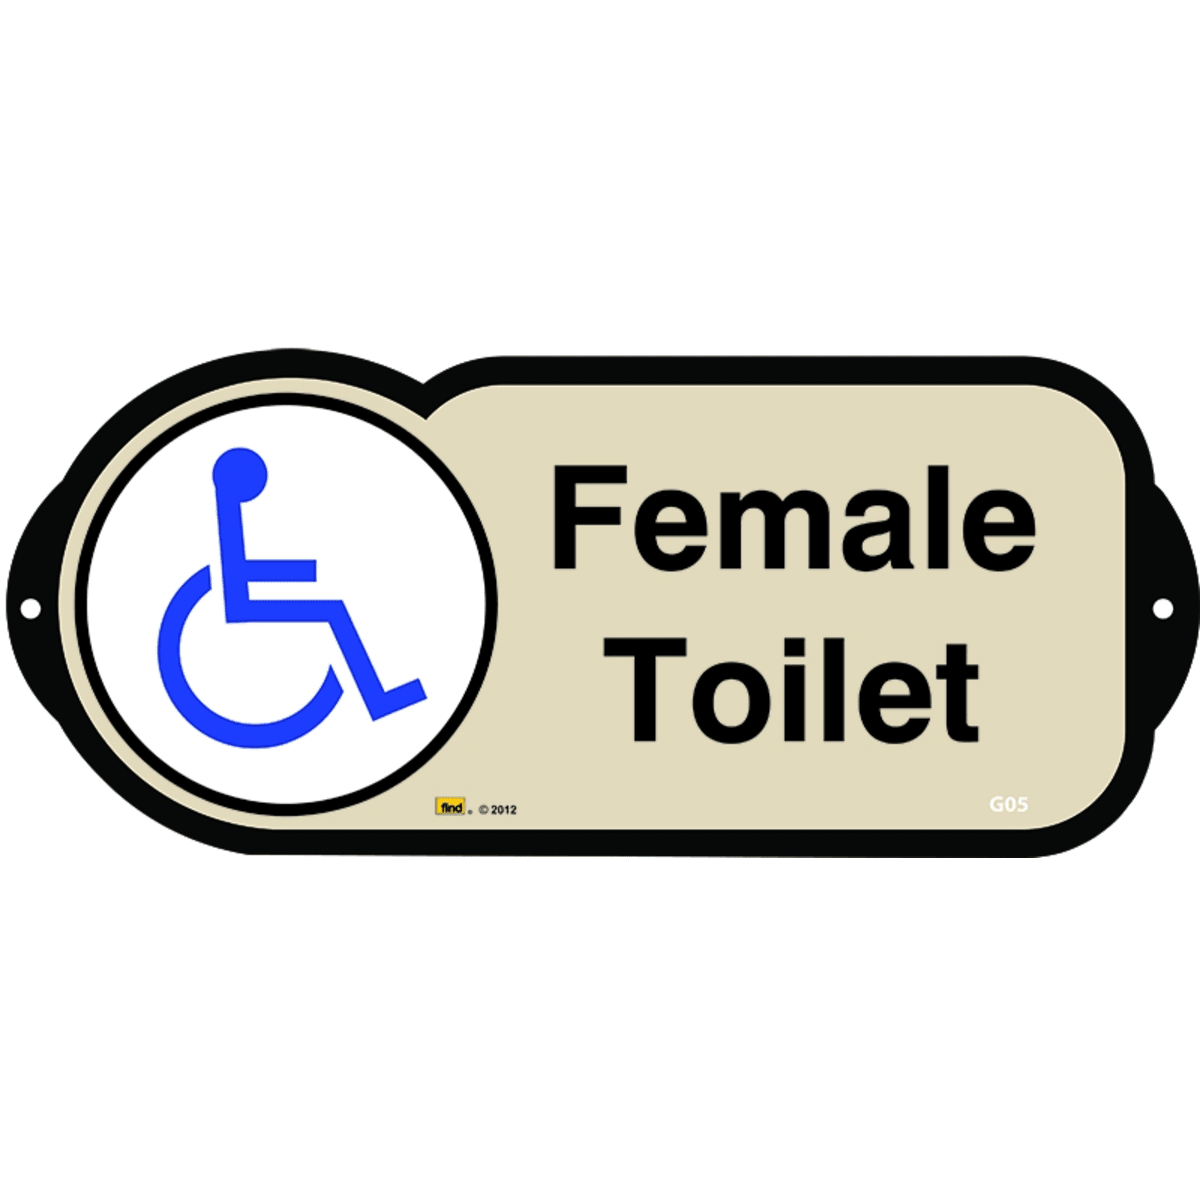 Female Disabled Toilet sign for autism and learning disabilities - signage